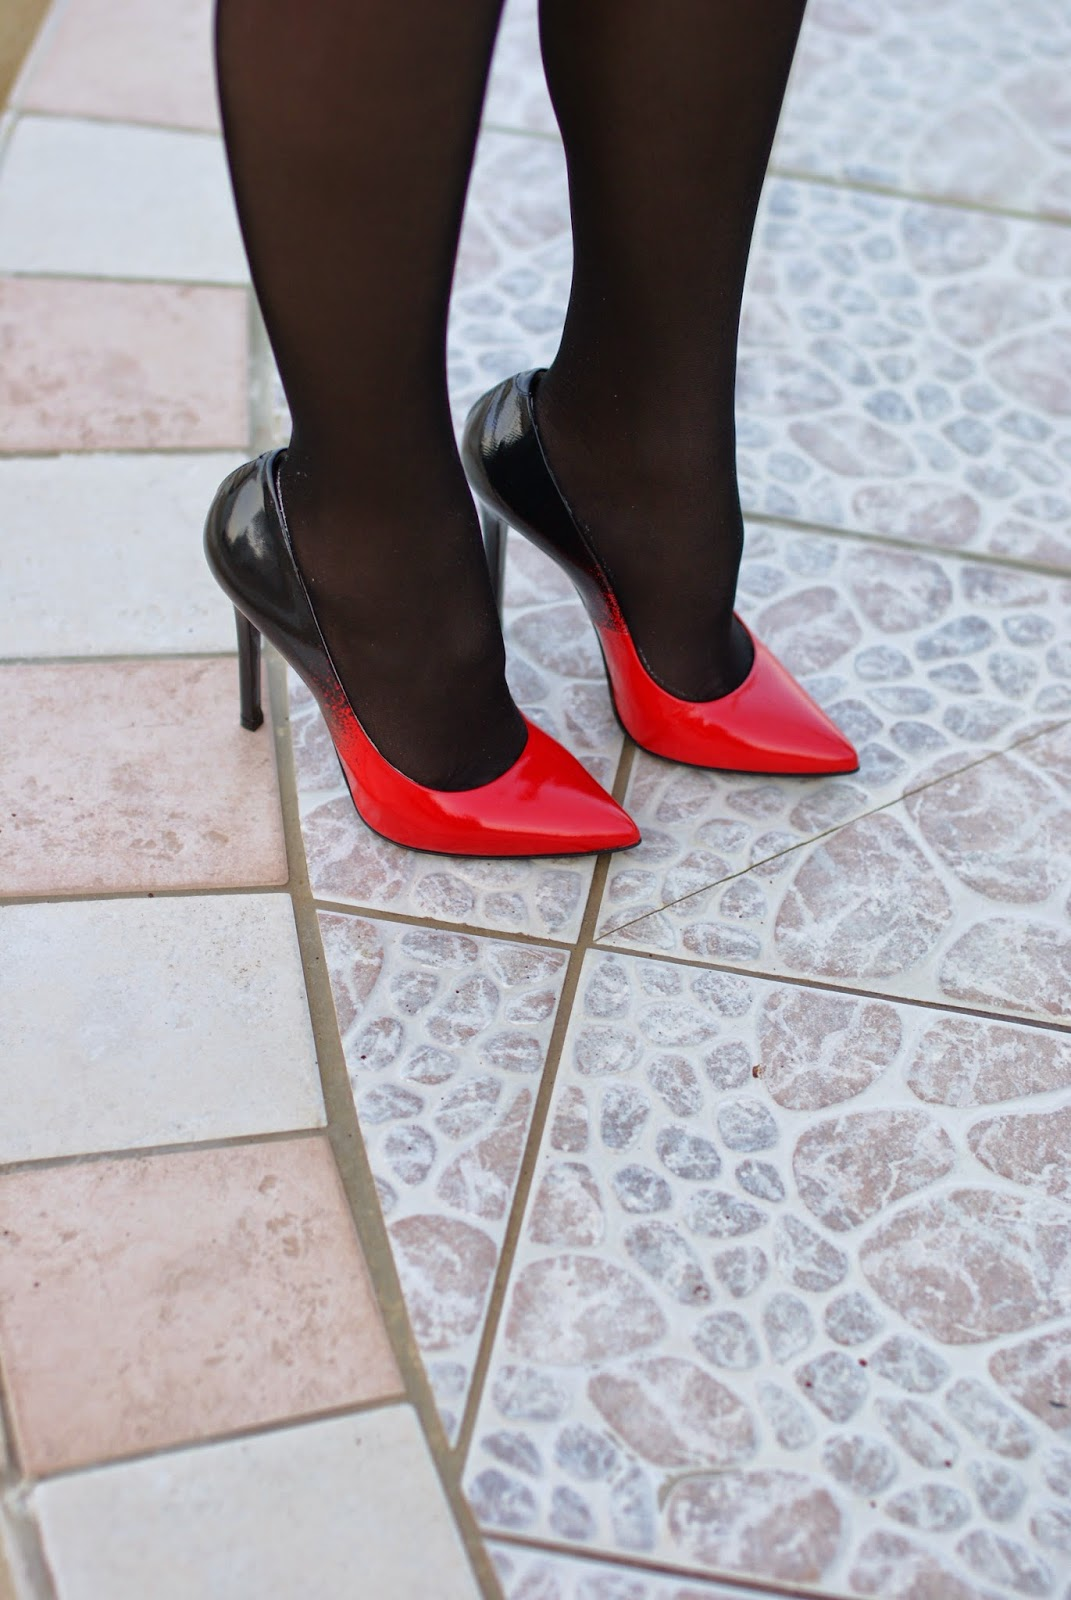 Nando Muzi heels, sheer stockings and stiletto pumps, Fashion and Cookies, fashion blogger